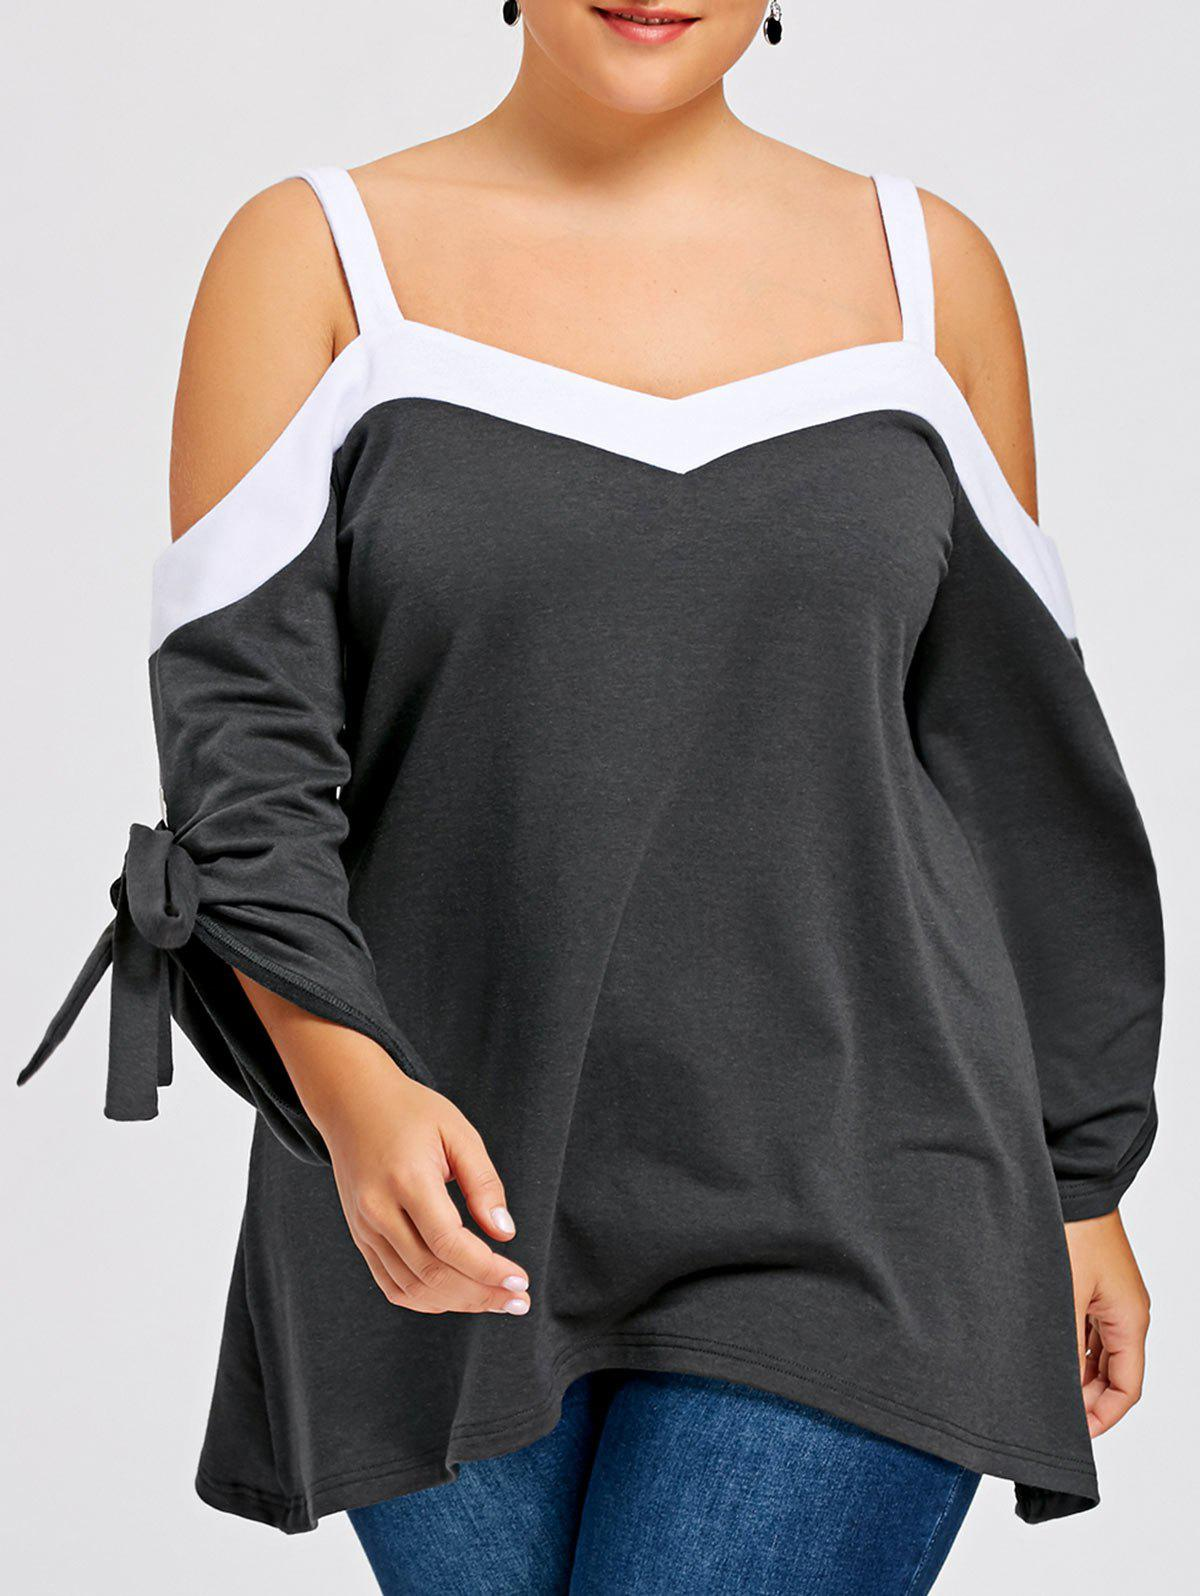 Plus Size Long Sleeve Cold Shoulder BlouseWOMEN<br><br>Size: XL; Color: BLACK GREY; Material: Polyester; Shirt Length: Regular; Sleeve Length: Full; Collar: V-Neck; Style: Fashion; Season: Fall,Spring,Winter; Sleeve Type: Cold Shoulder; Pattern Type: Solid; Weight: 0.4800kg; Package Contents: 1 x Blouse;